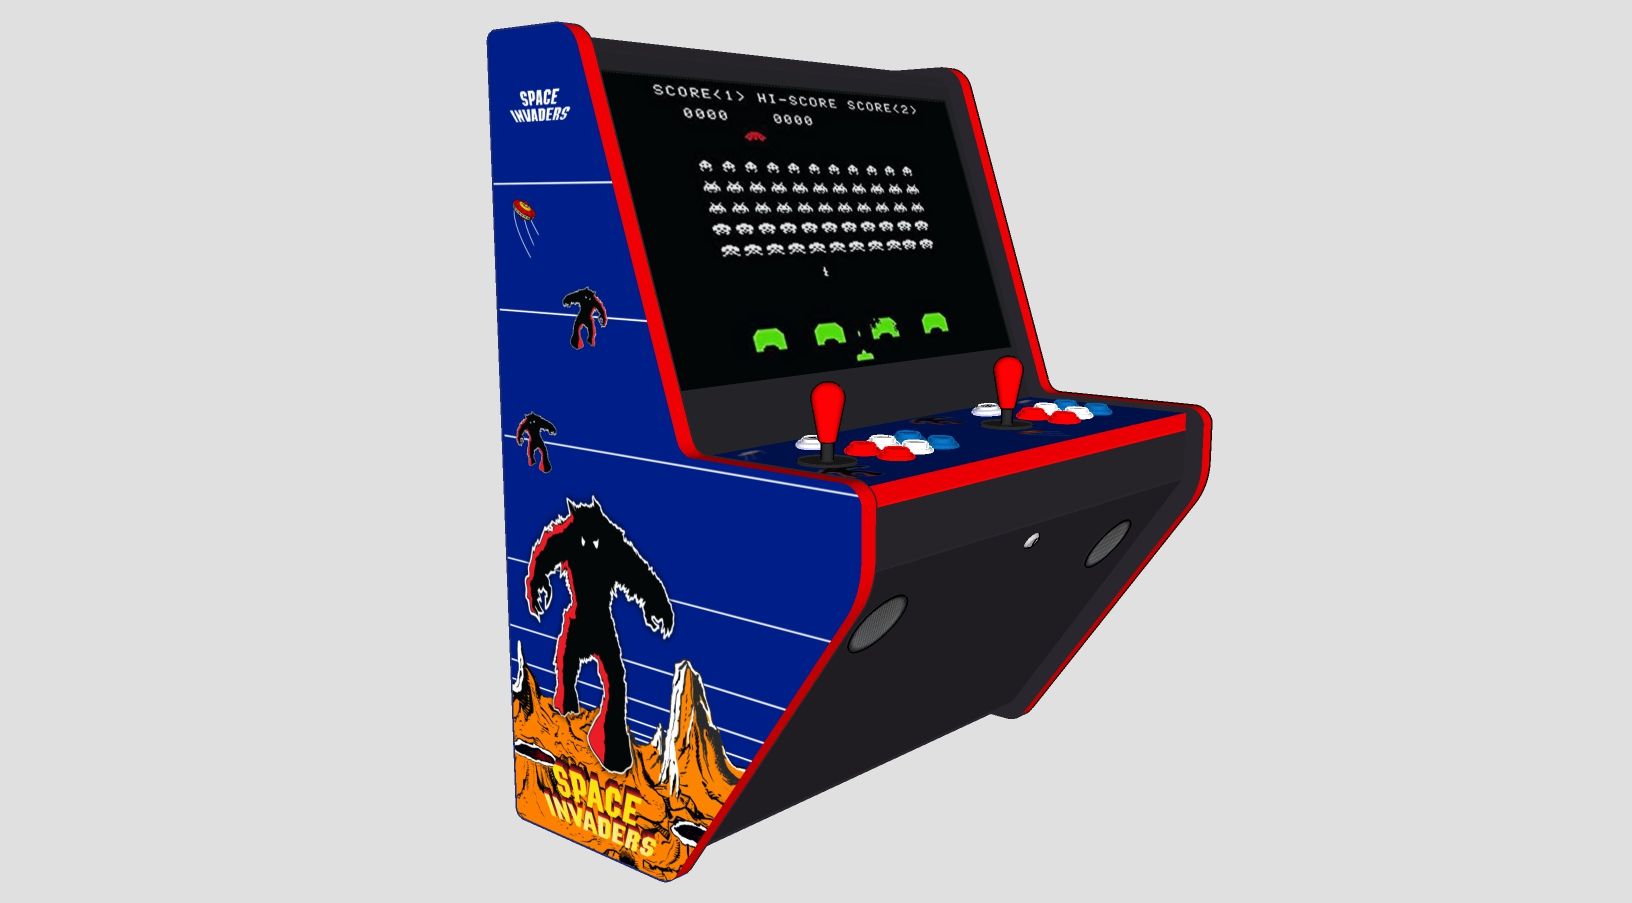 Wall Hung Arcade 3000 Games Space Invaders Theme - Left